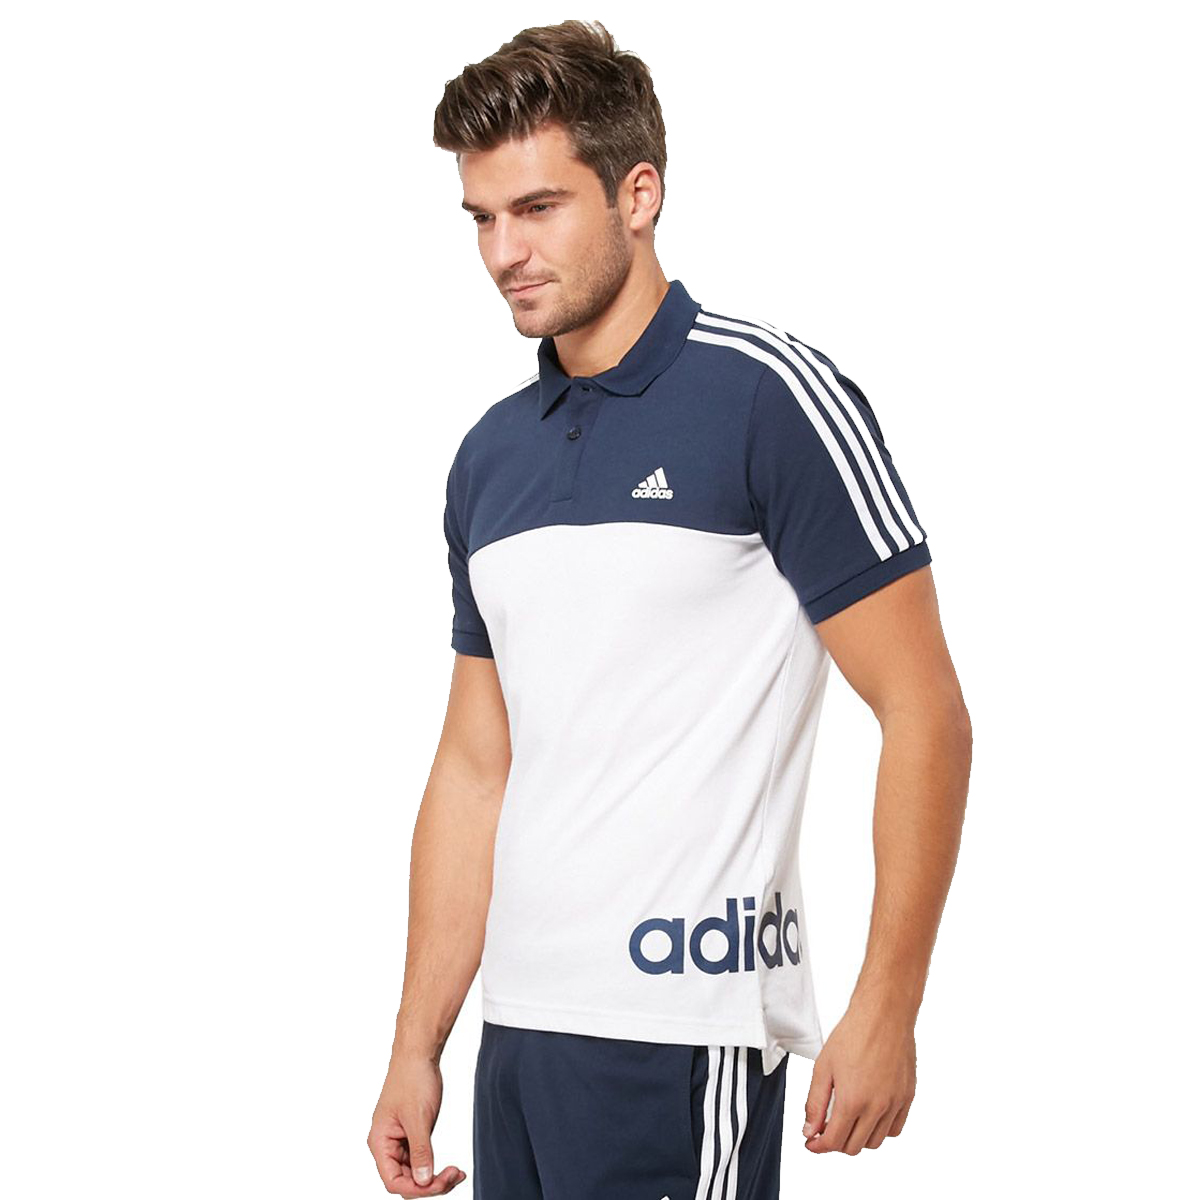 adidas polo t shirt mens